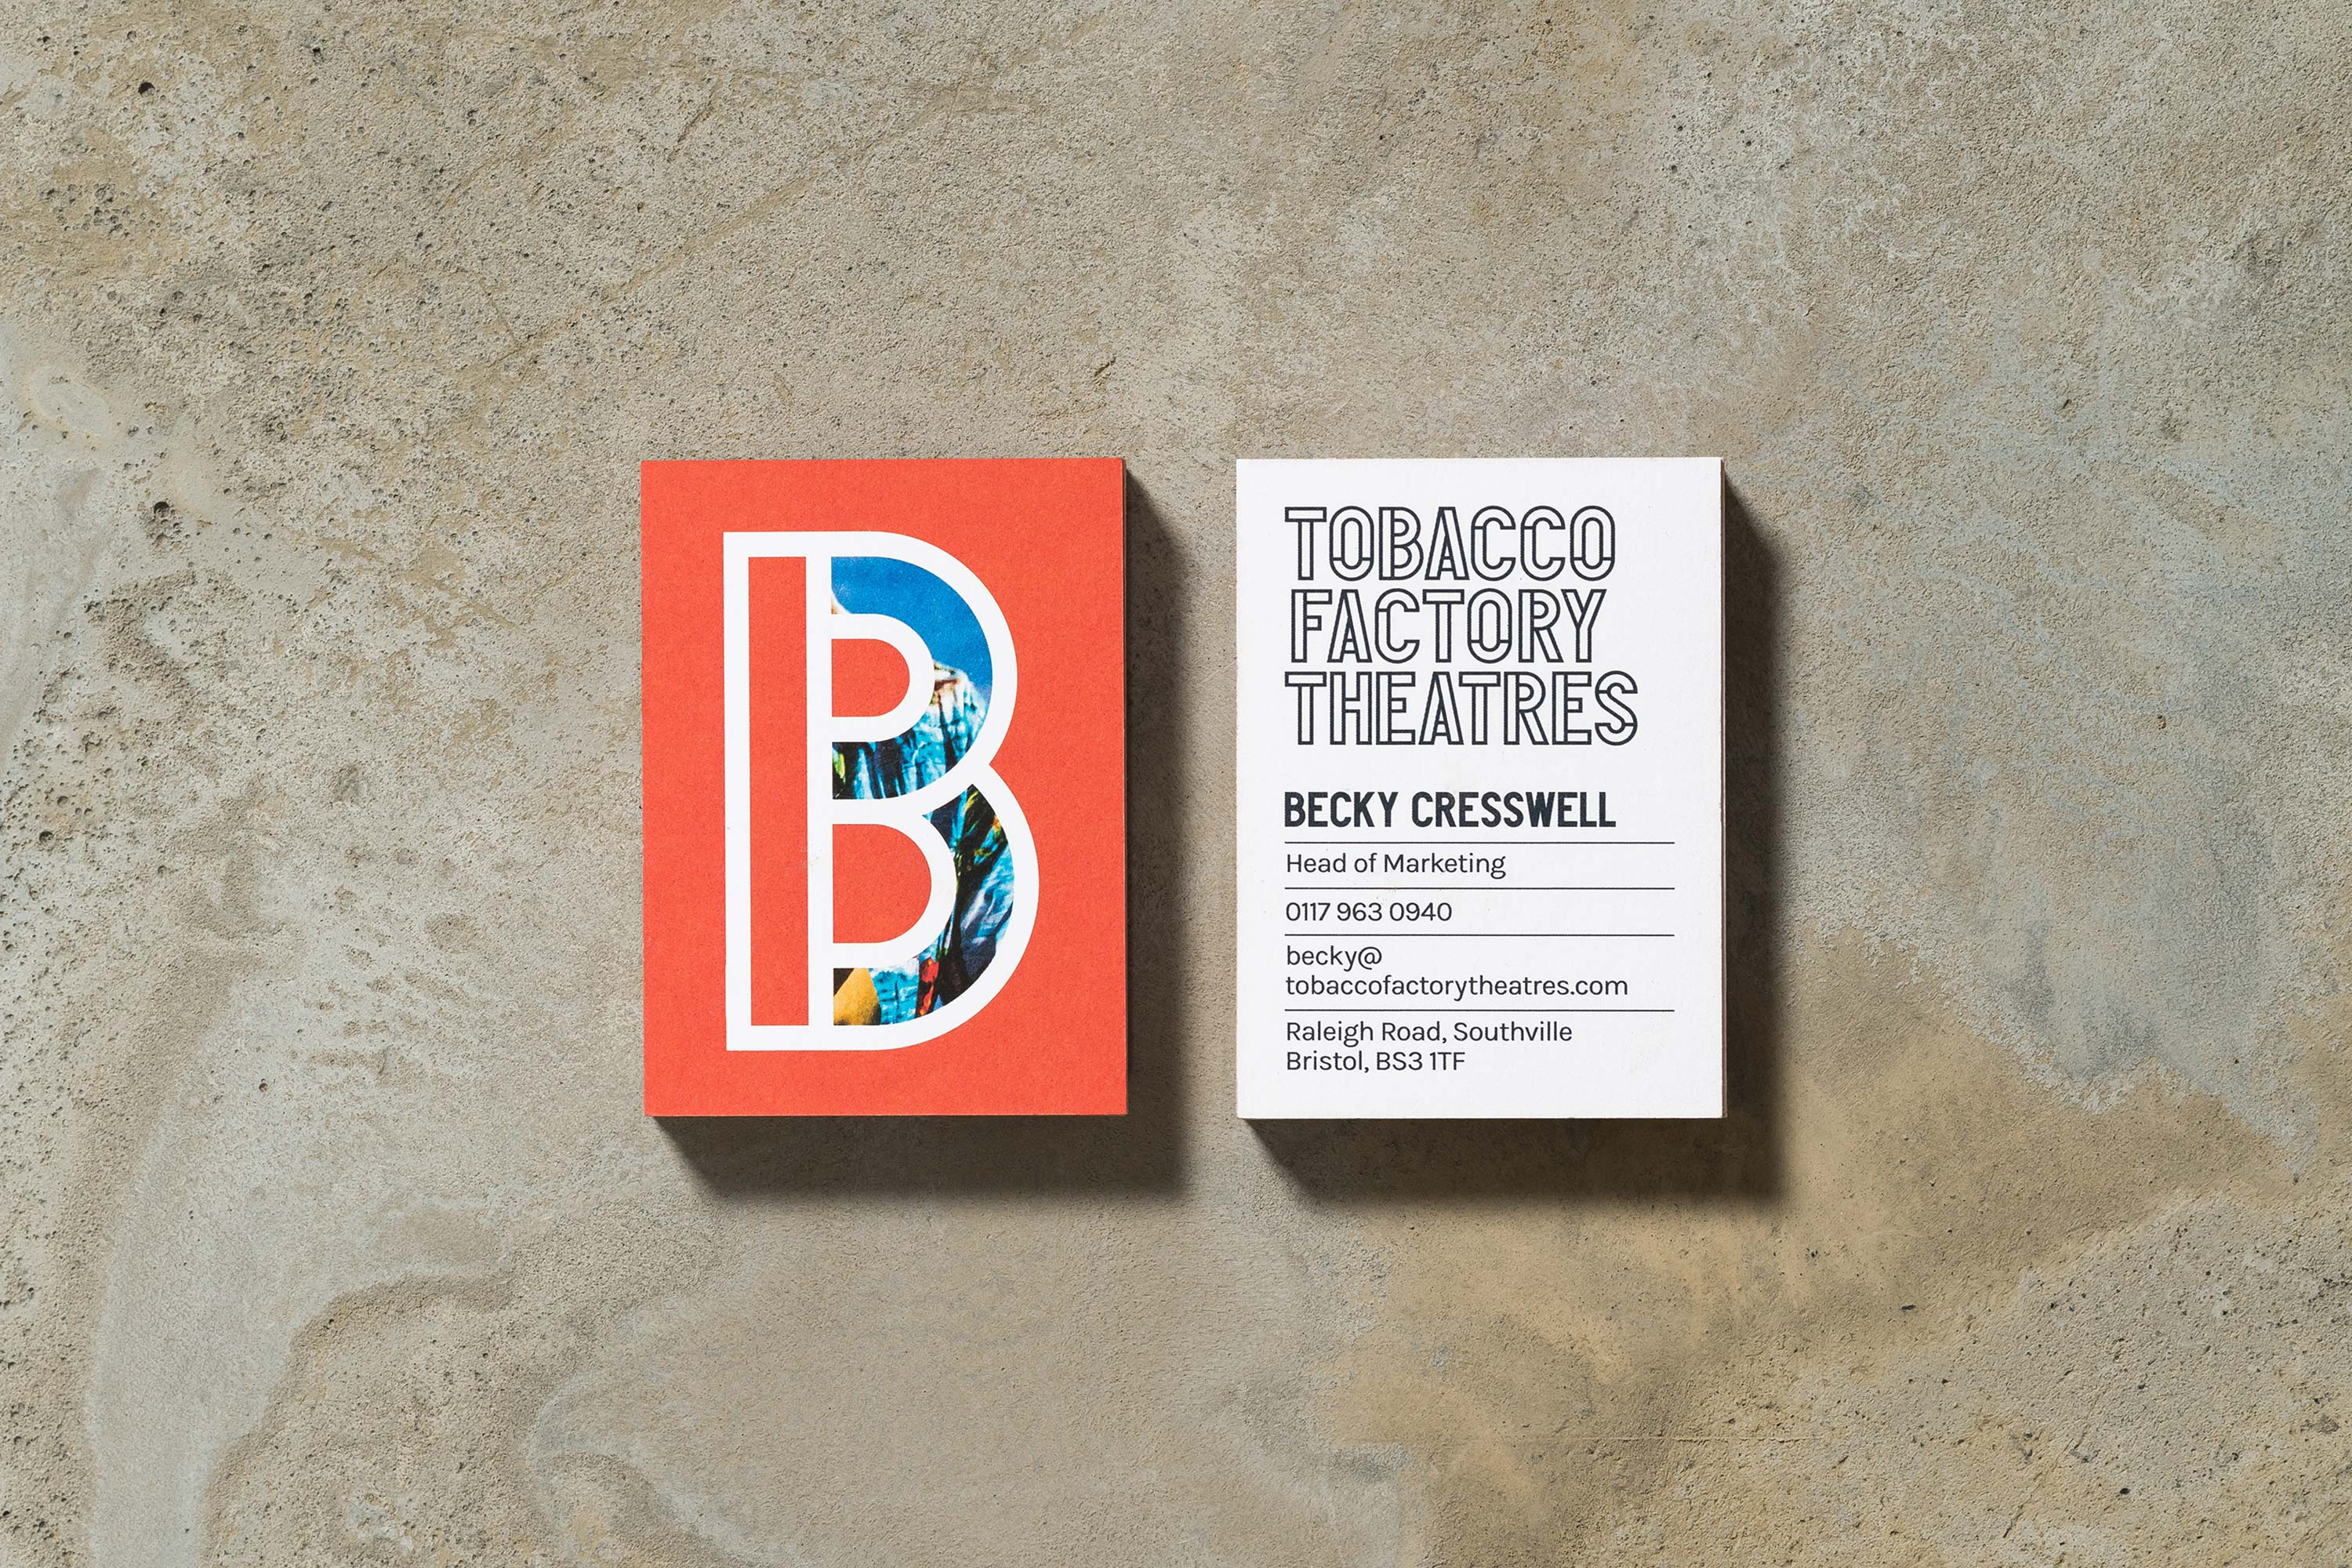 Tobacco Factory Theatres business card example by Fiasco Design